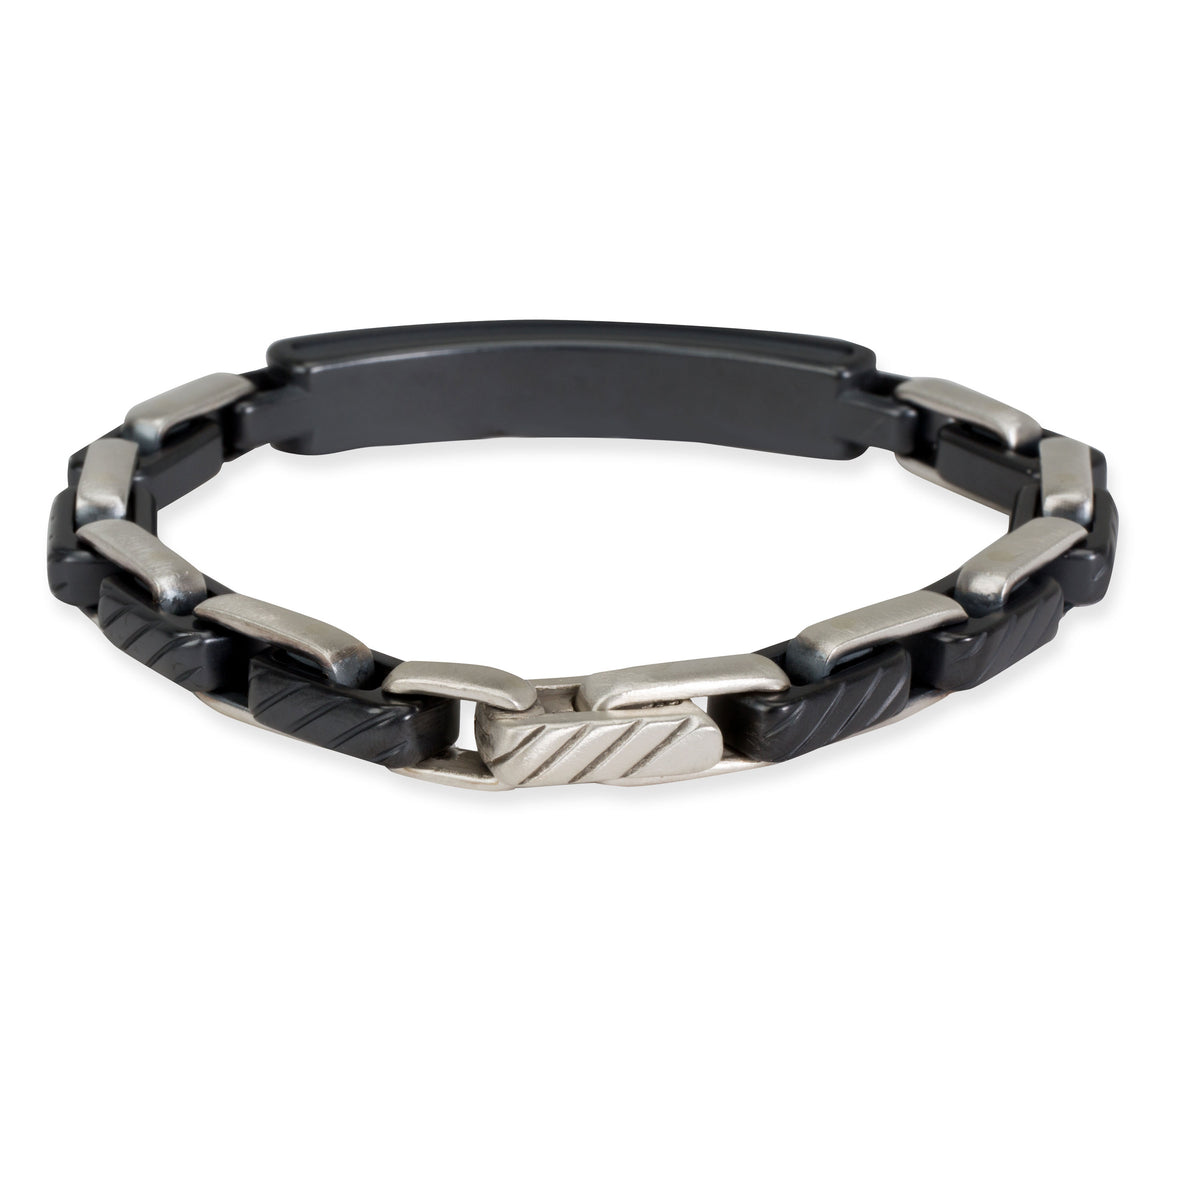 David Yurman Black Diamond ID Bracelet in  Sterling Silver/Titanium 2 CTW